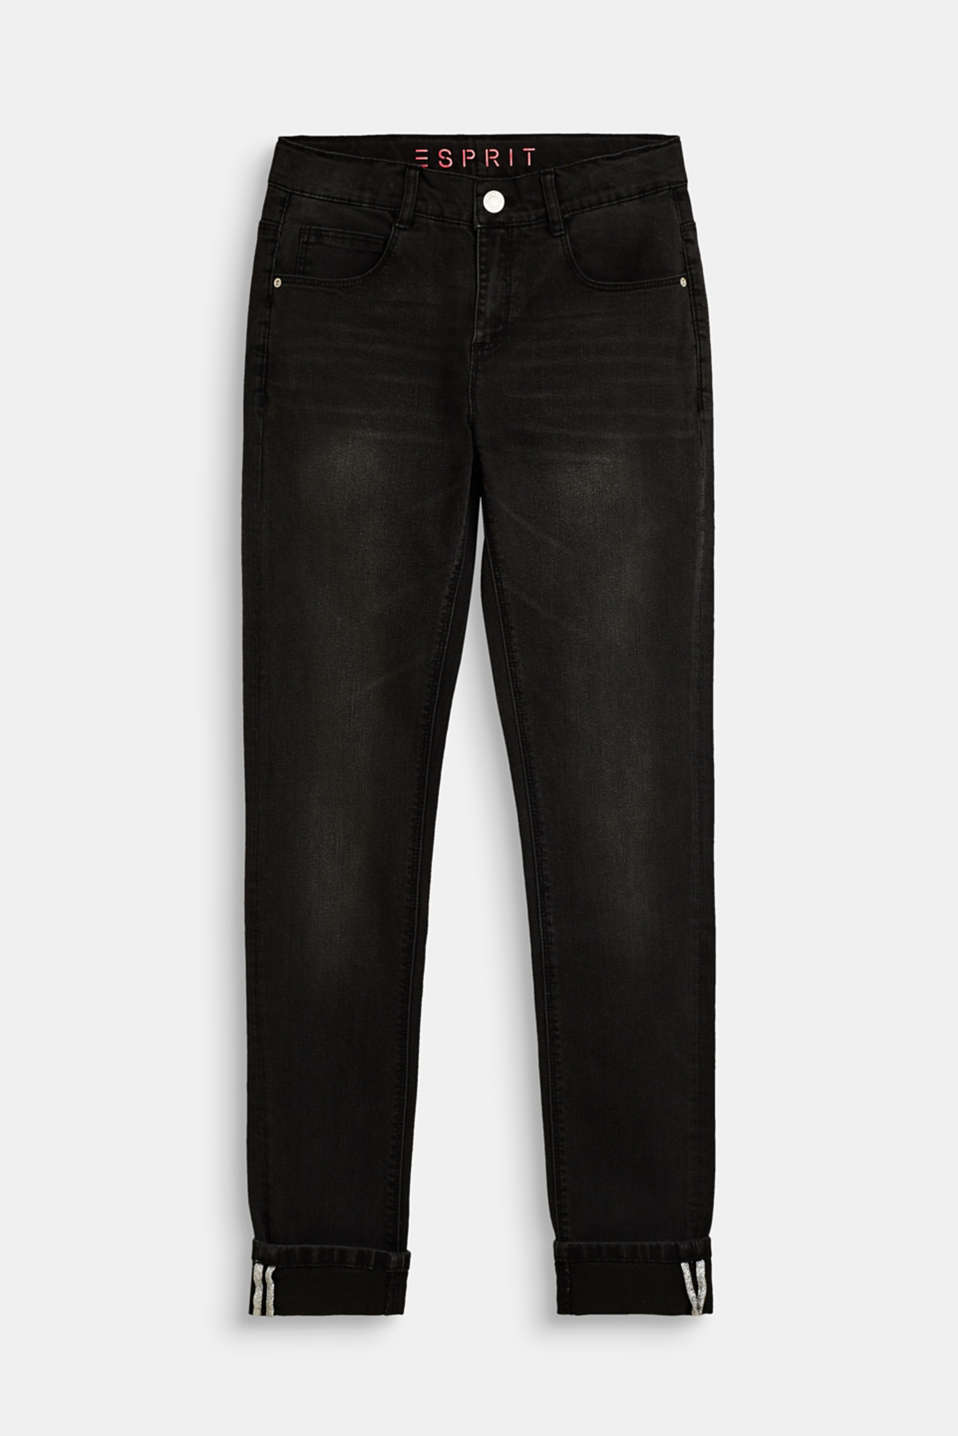 Esprit - Stretch jeans with glittering inner piping